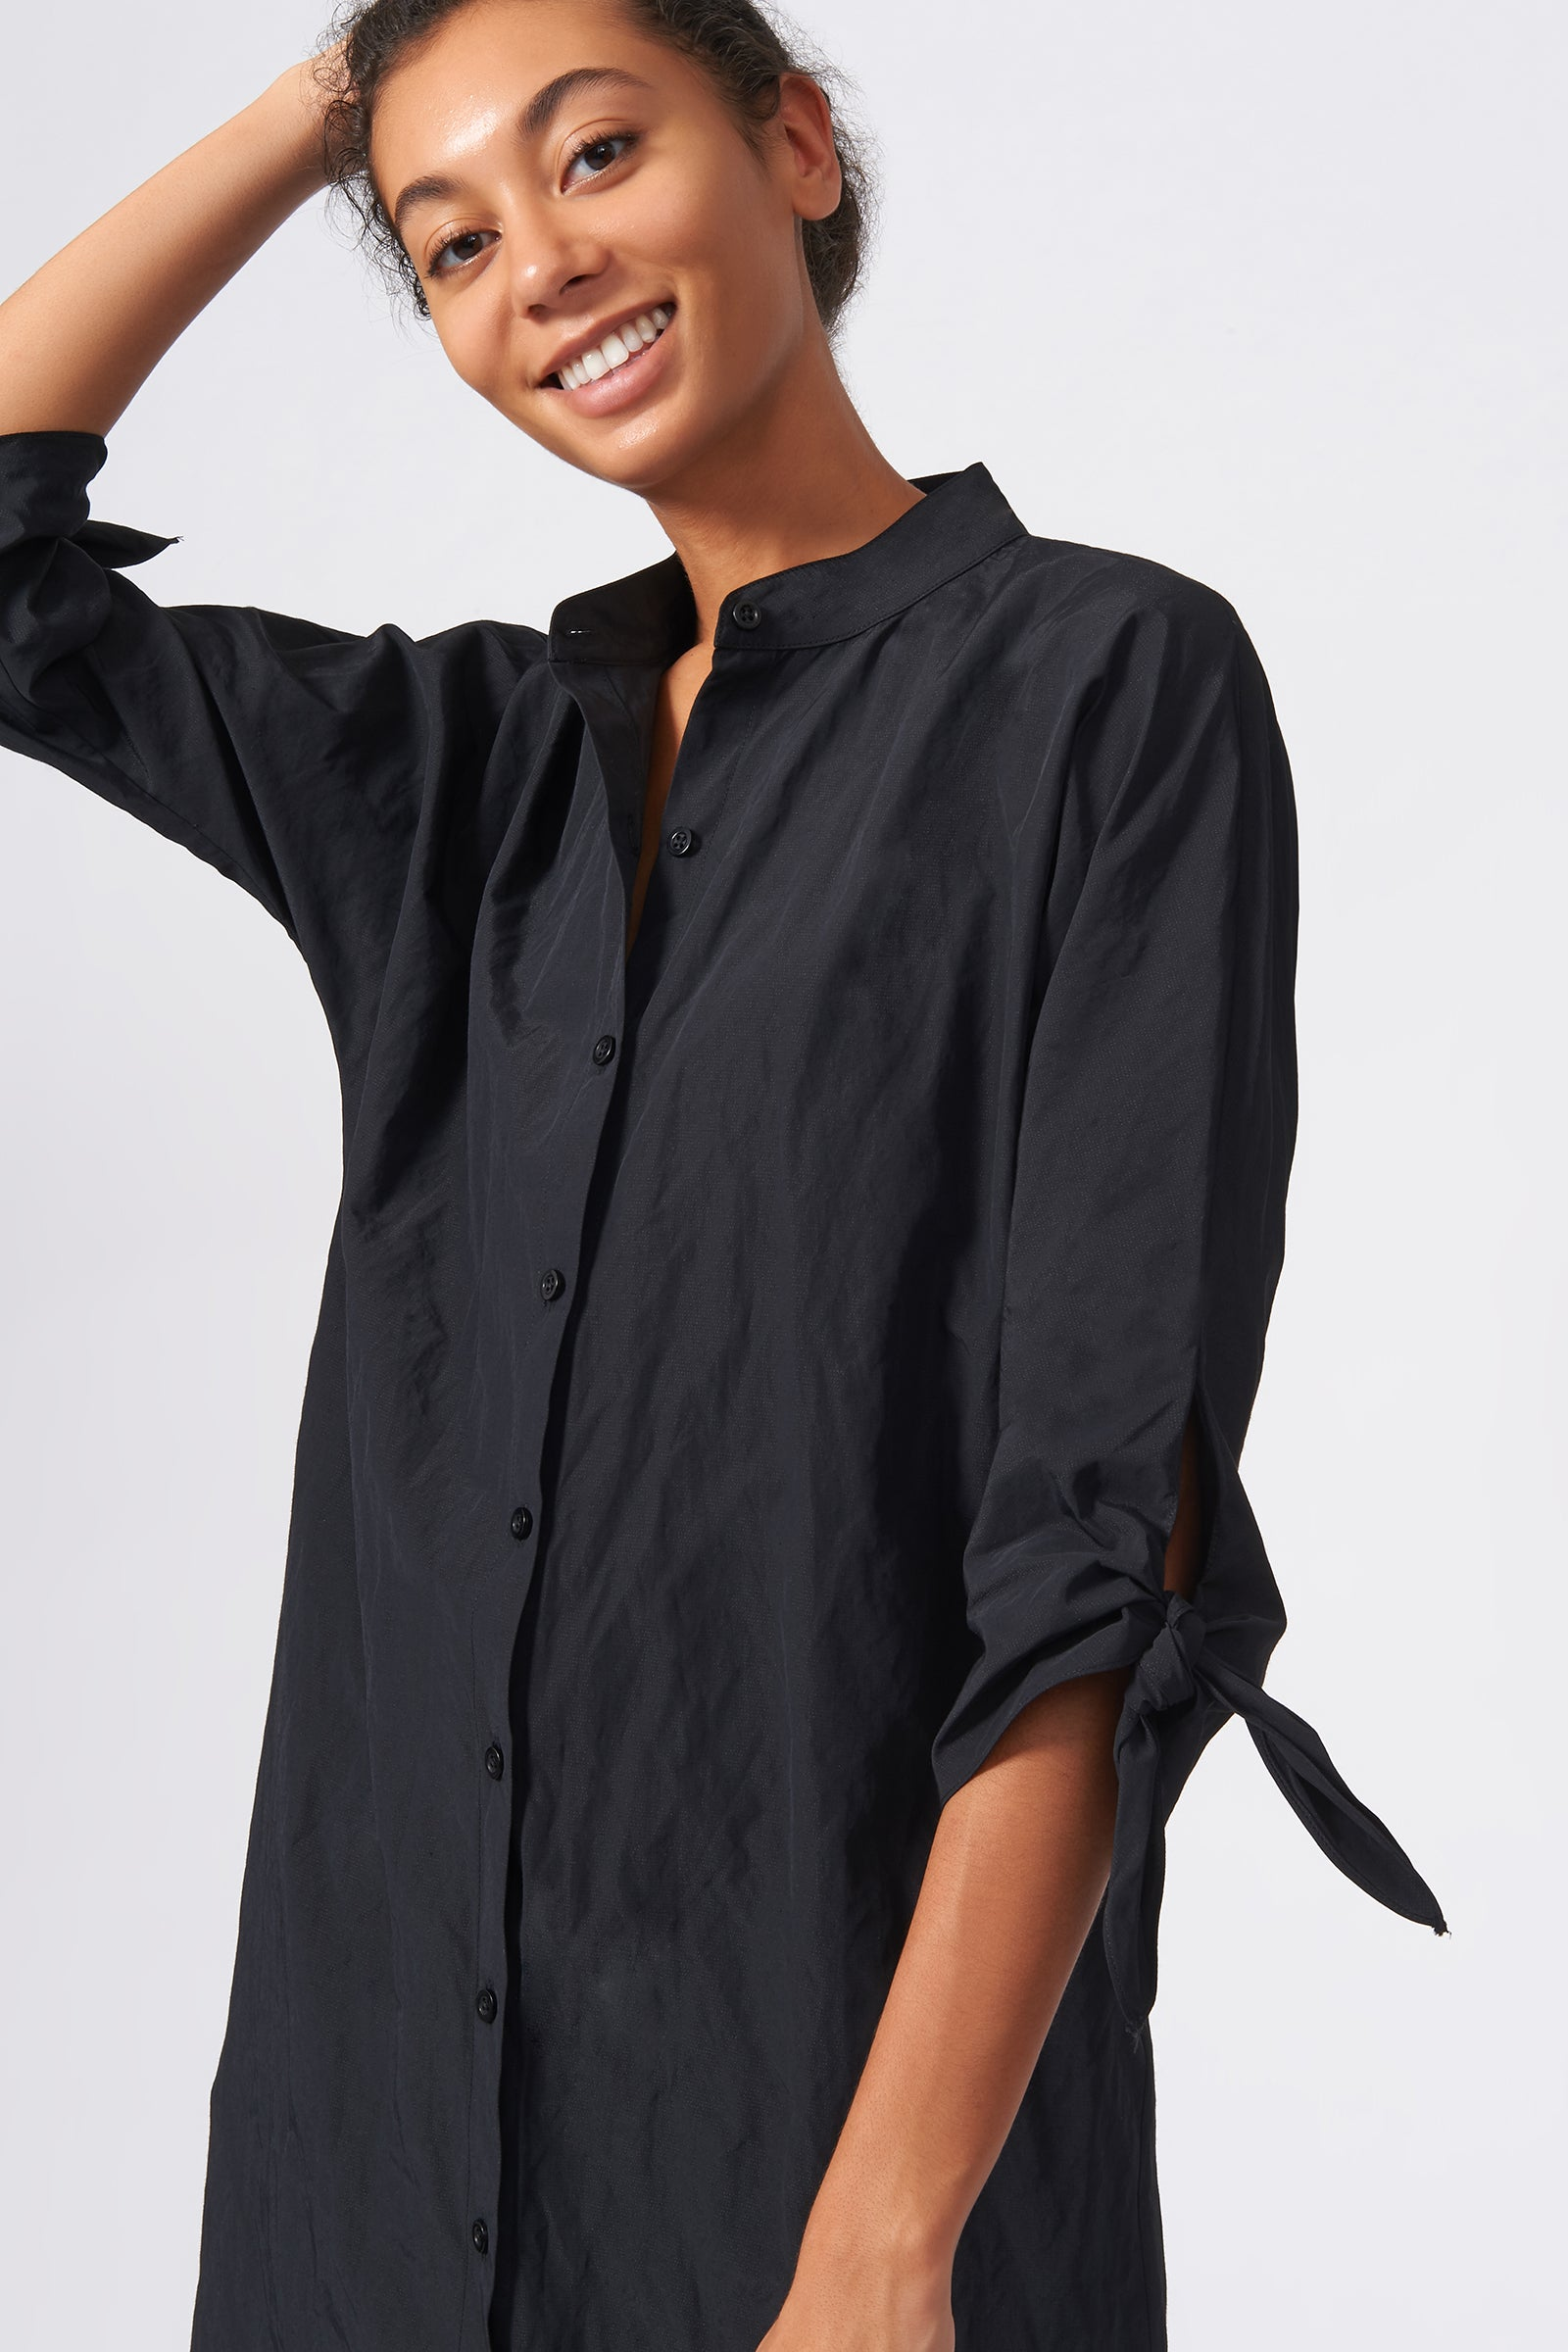 Kal Rieman Tie Sleeve Tunic in Black on Model Close-up View